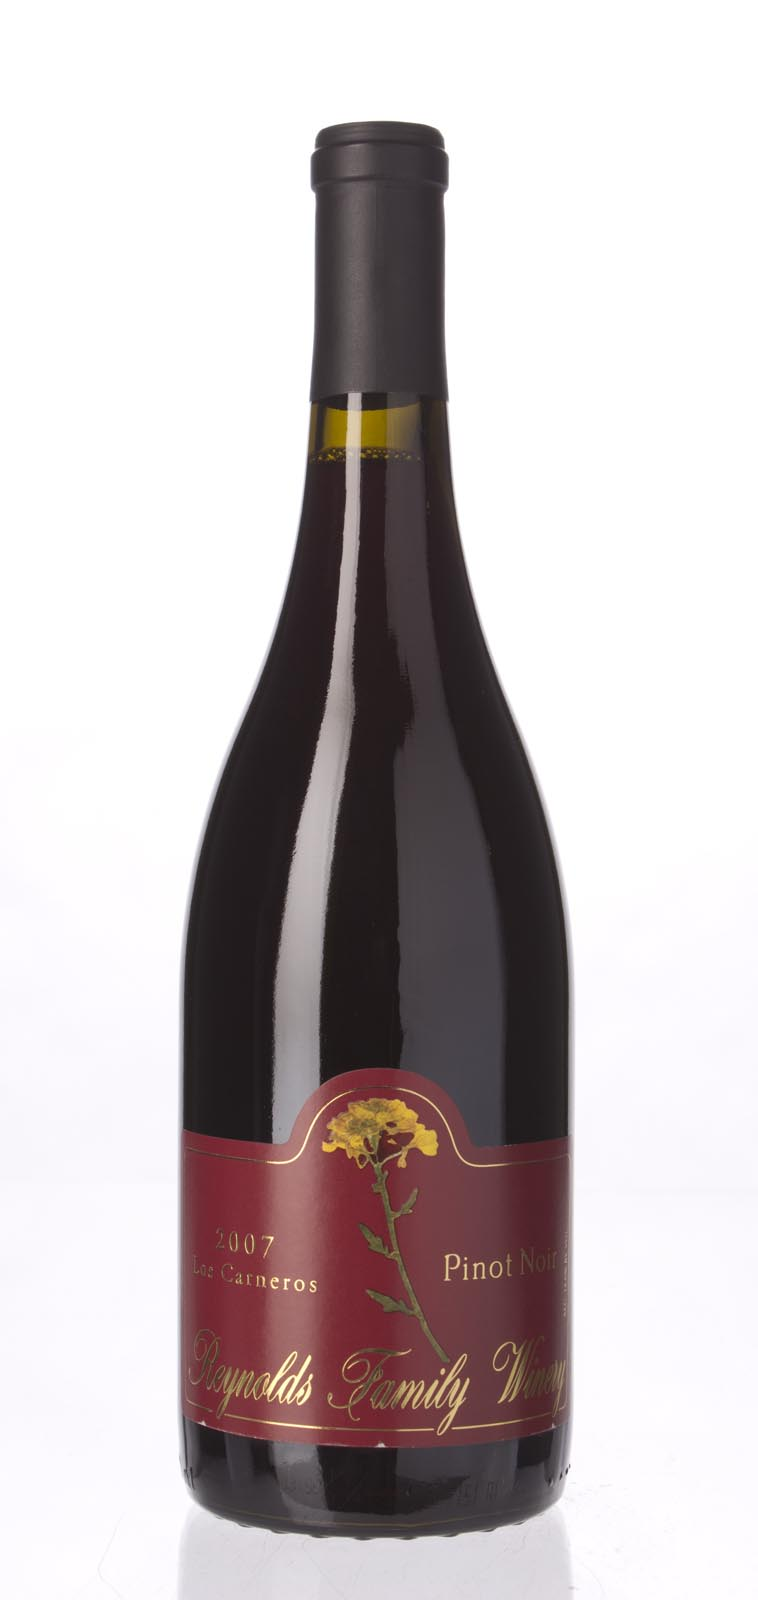 Reynolds Family Pinot Noir Carneros 2007, 750mL () from The BPW - Merchants of rare and fine wines.